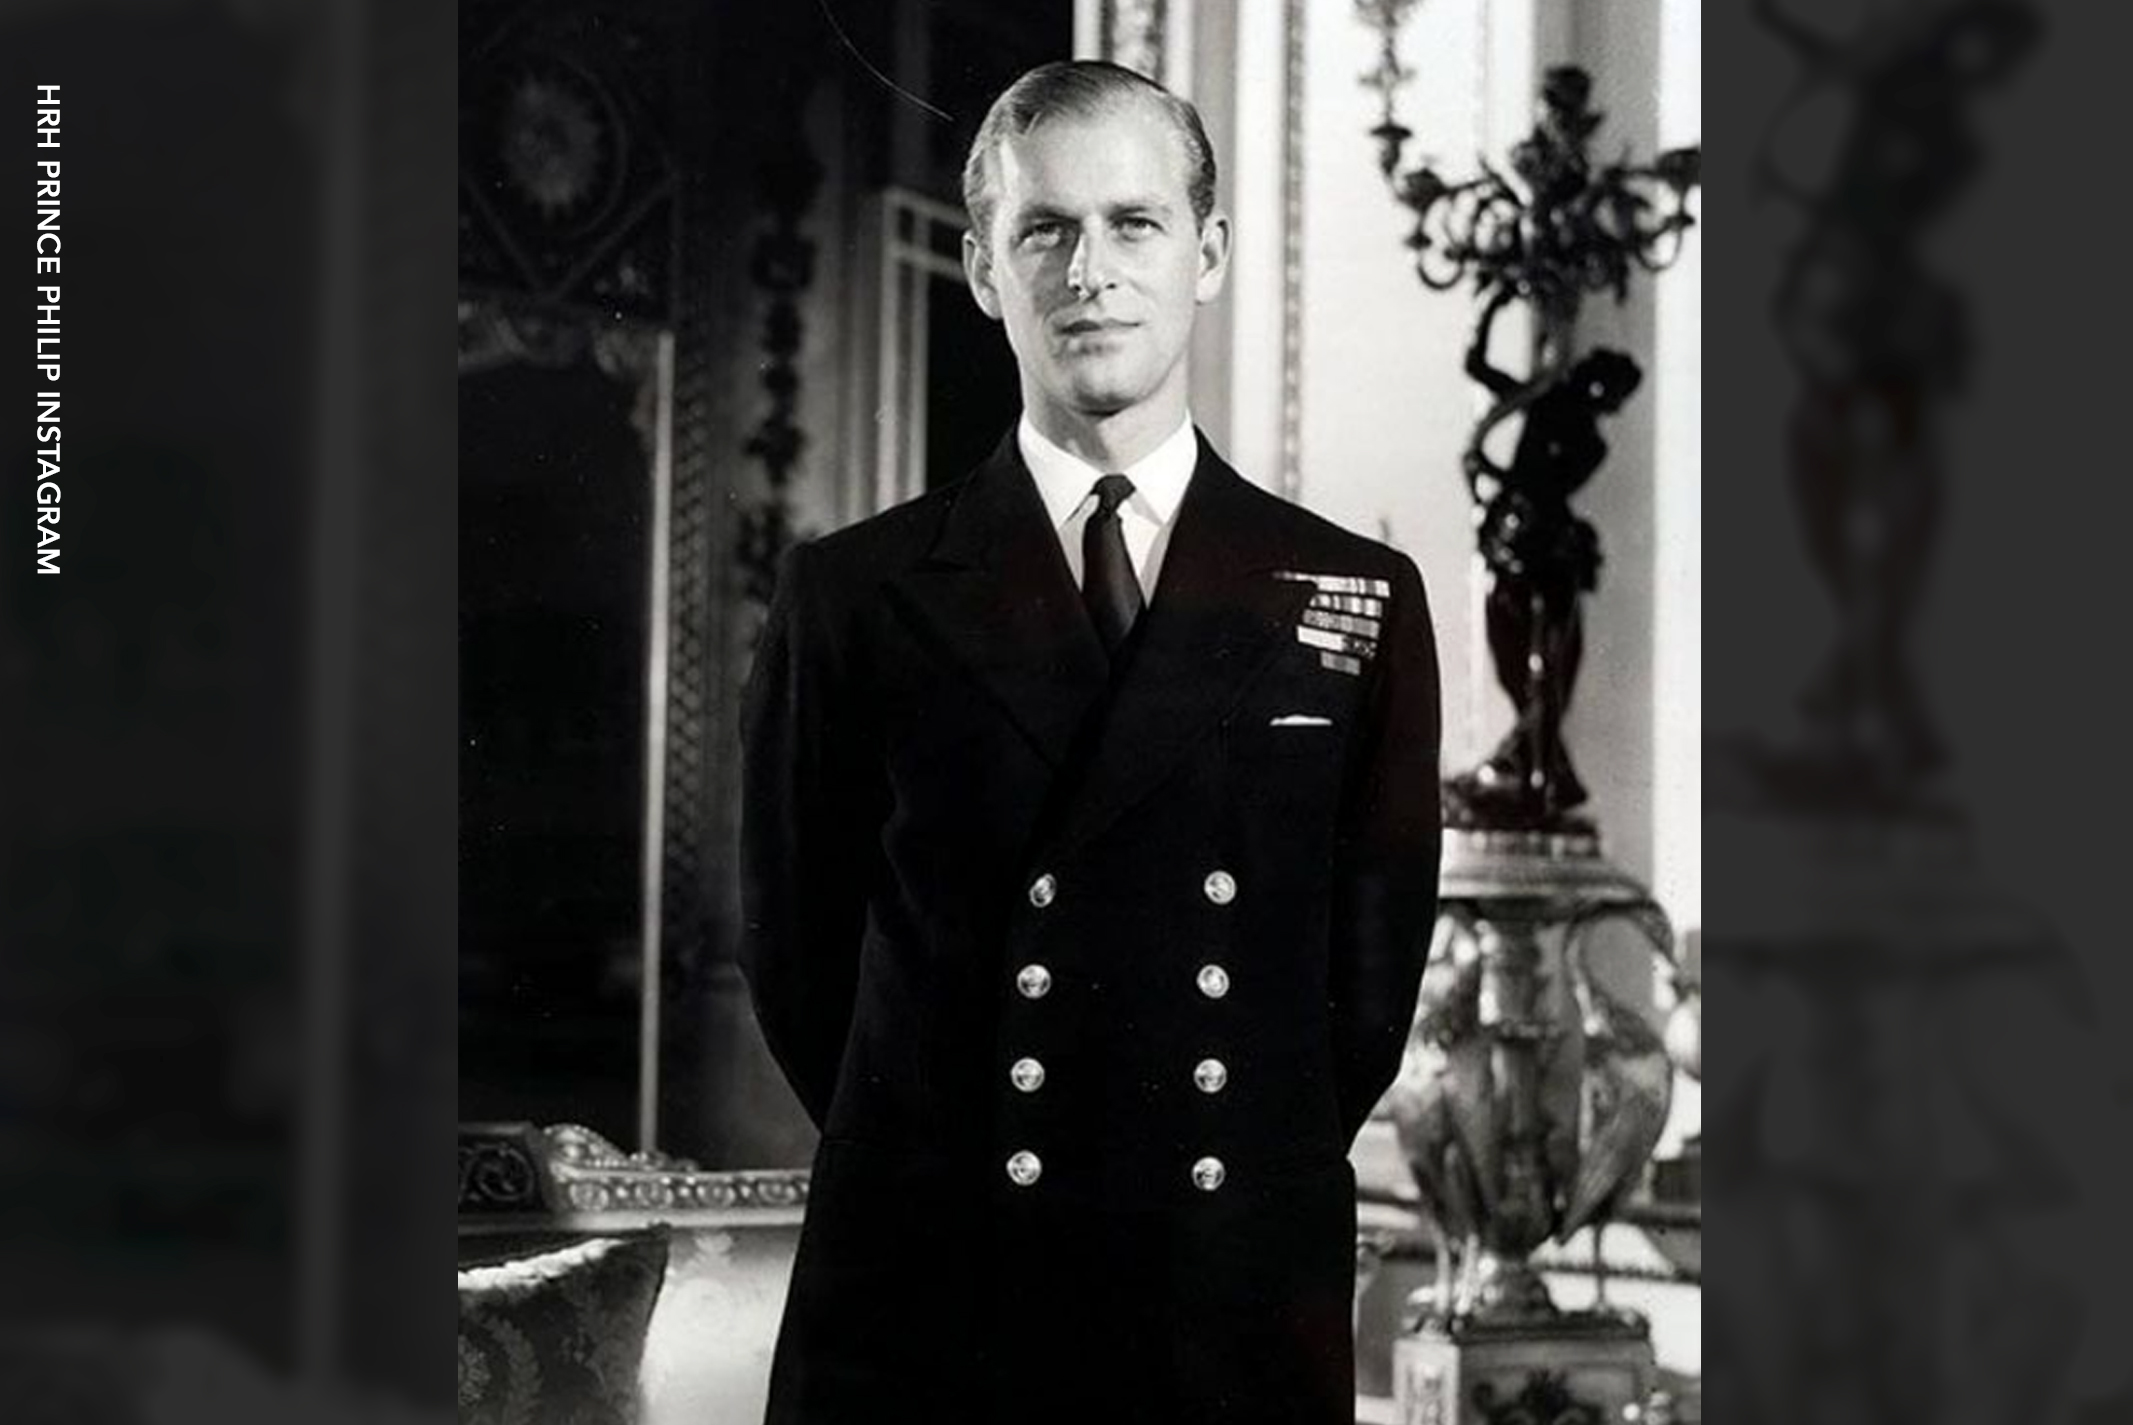 Prince Philip, the Duke of Edinburgh, dies at 99 - UNTV ...